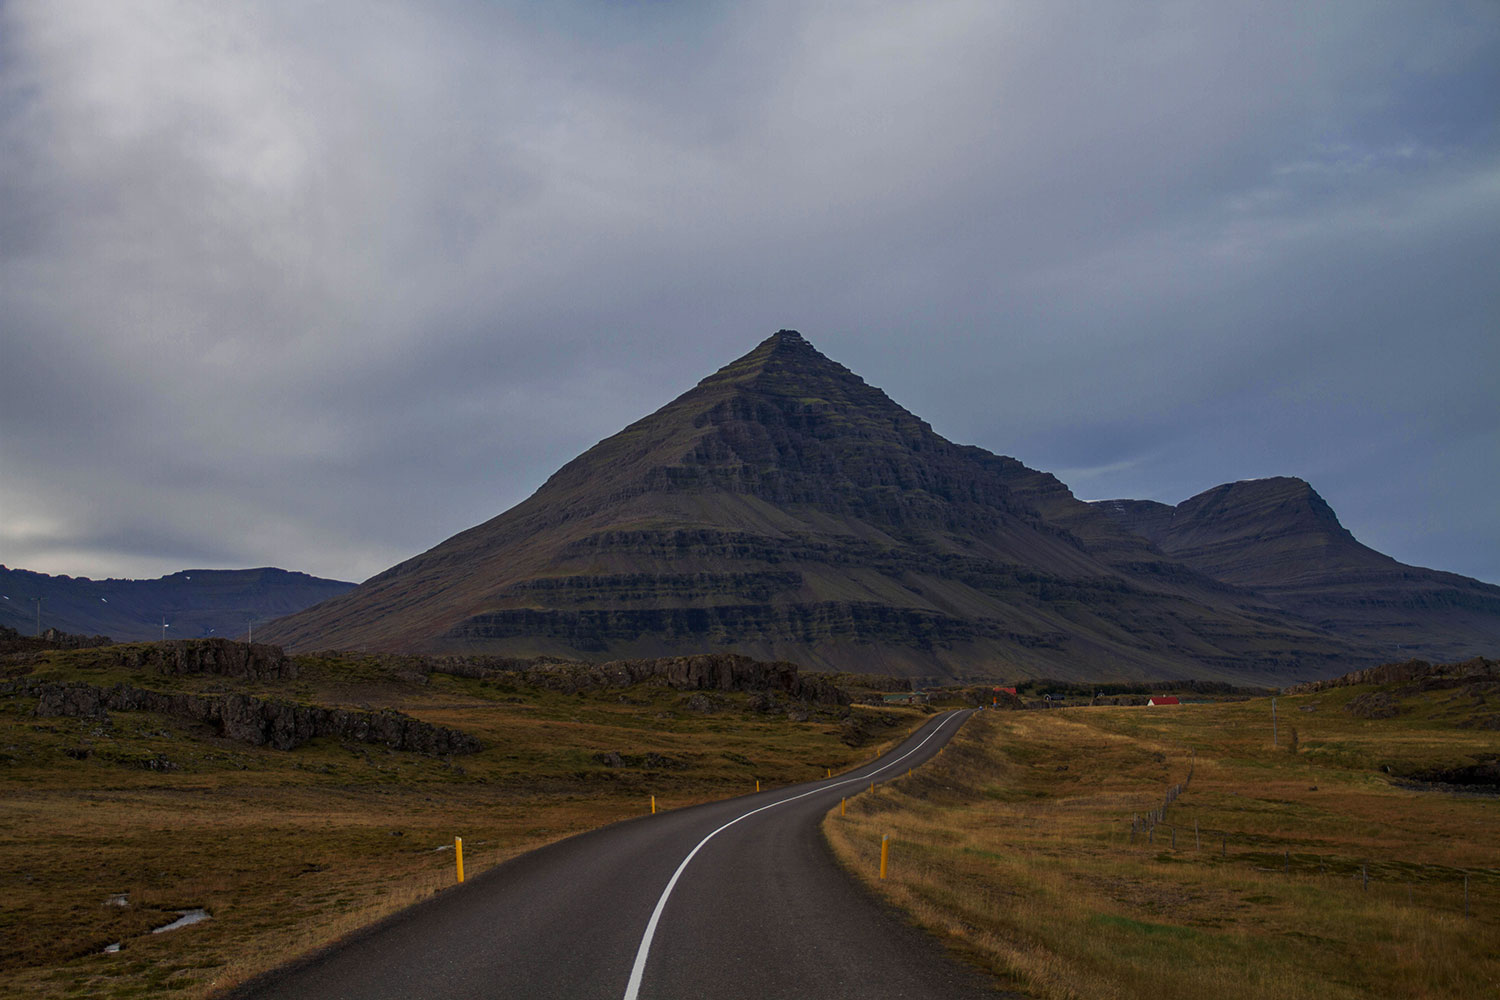 driving in Westfjords, explore Iceland in car, Happy campers, highway 1, Iceland, living in a camper van Iceland, pros and cons of camper van, ring of fire, ring road, sights of Iceland, things to do in Iceland, travel, travel Iceland, travel in camper van